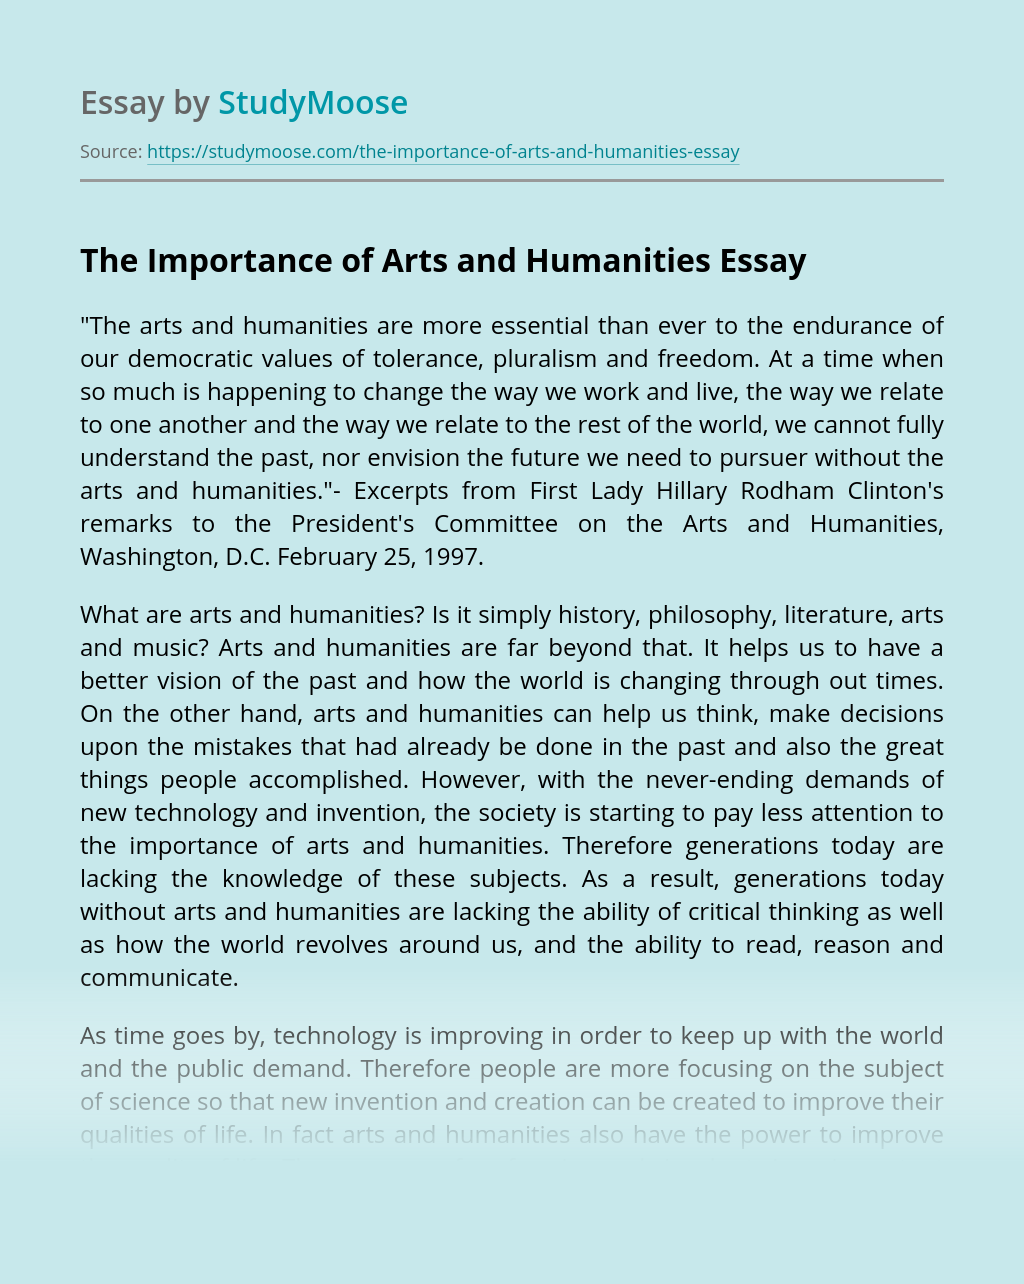 The Importance of Arts and Humanities